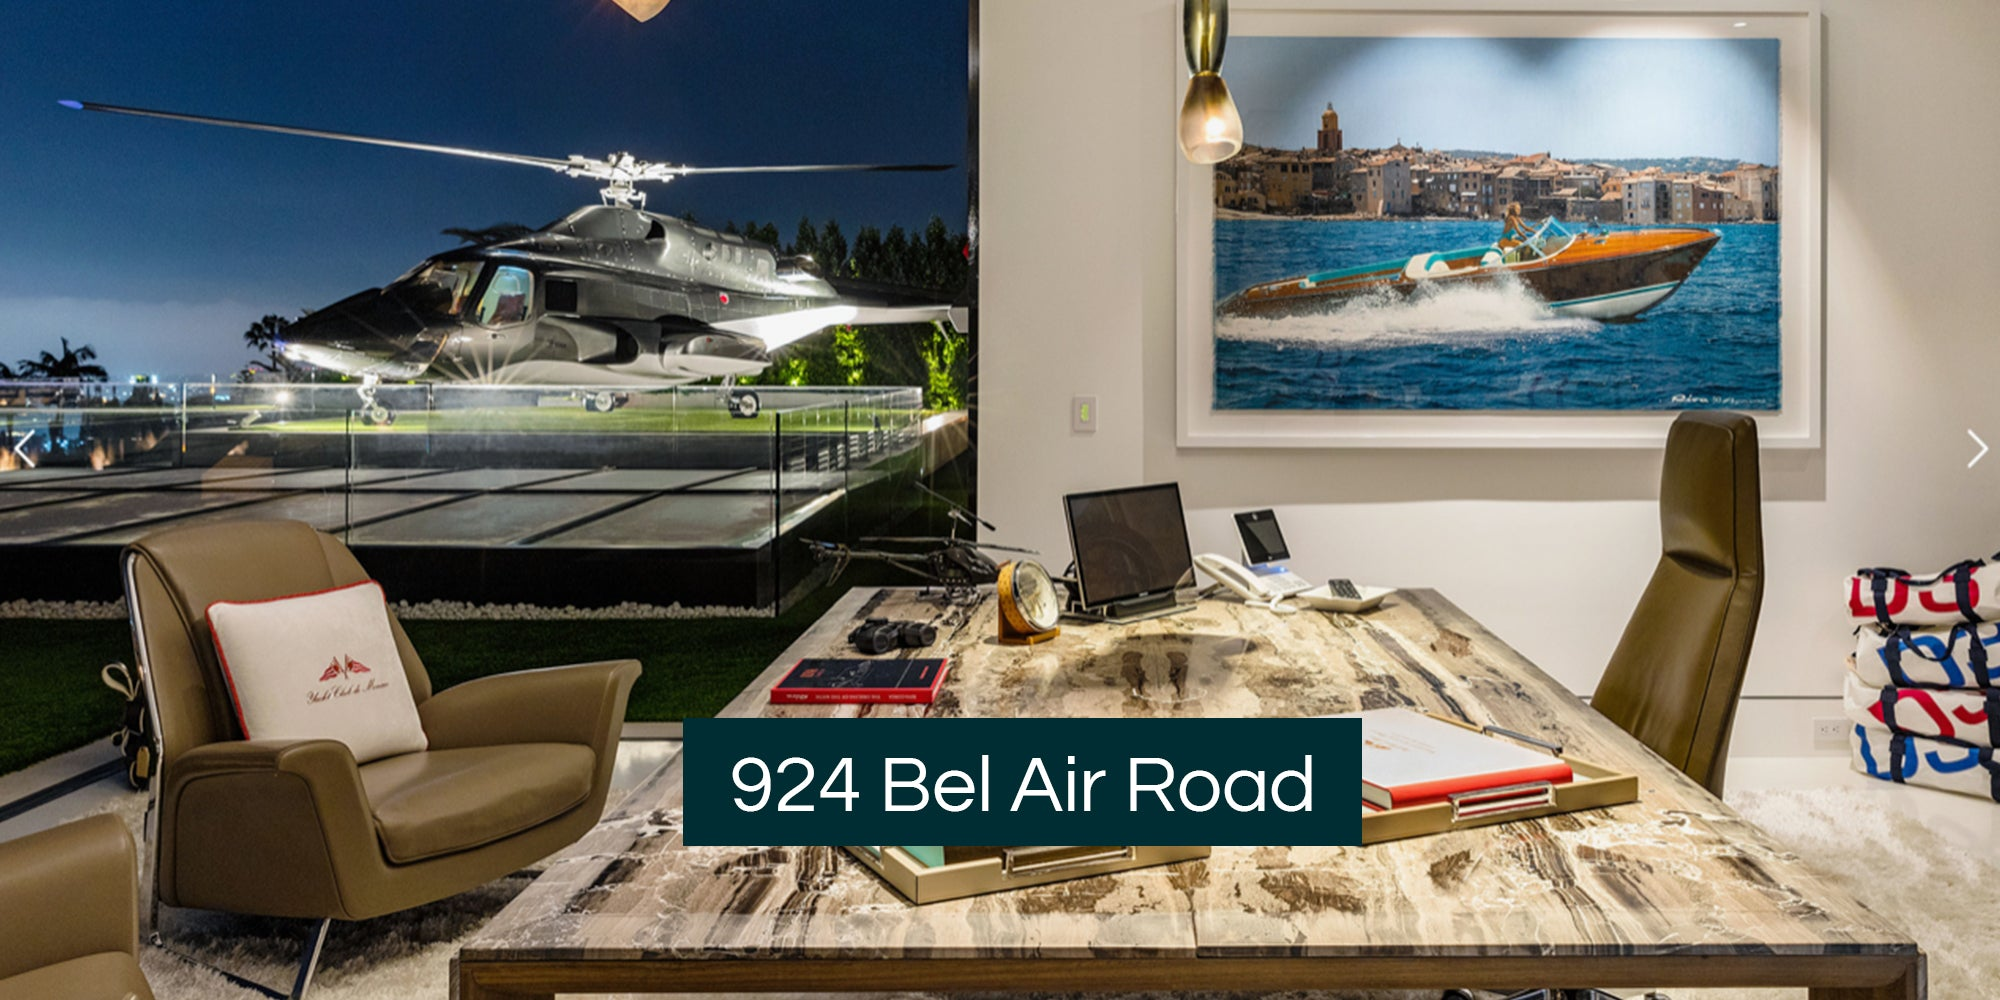 924 Bel Air Road